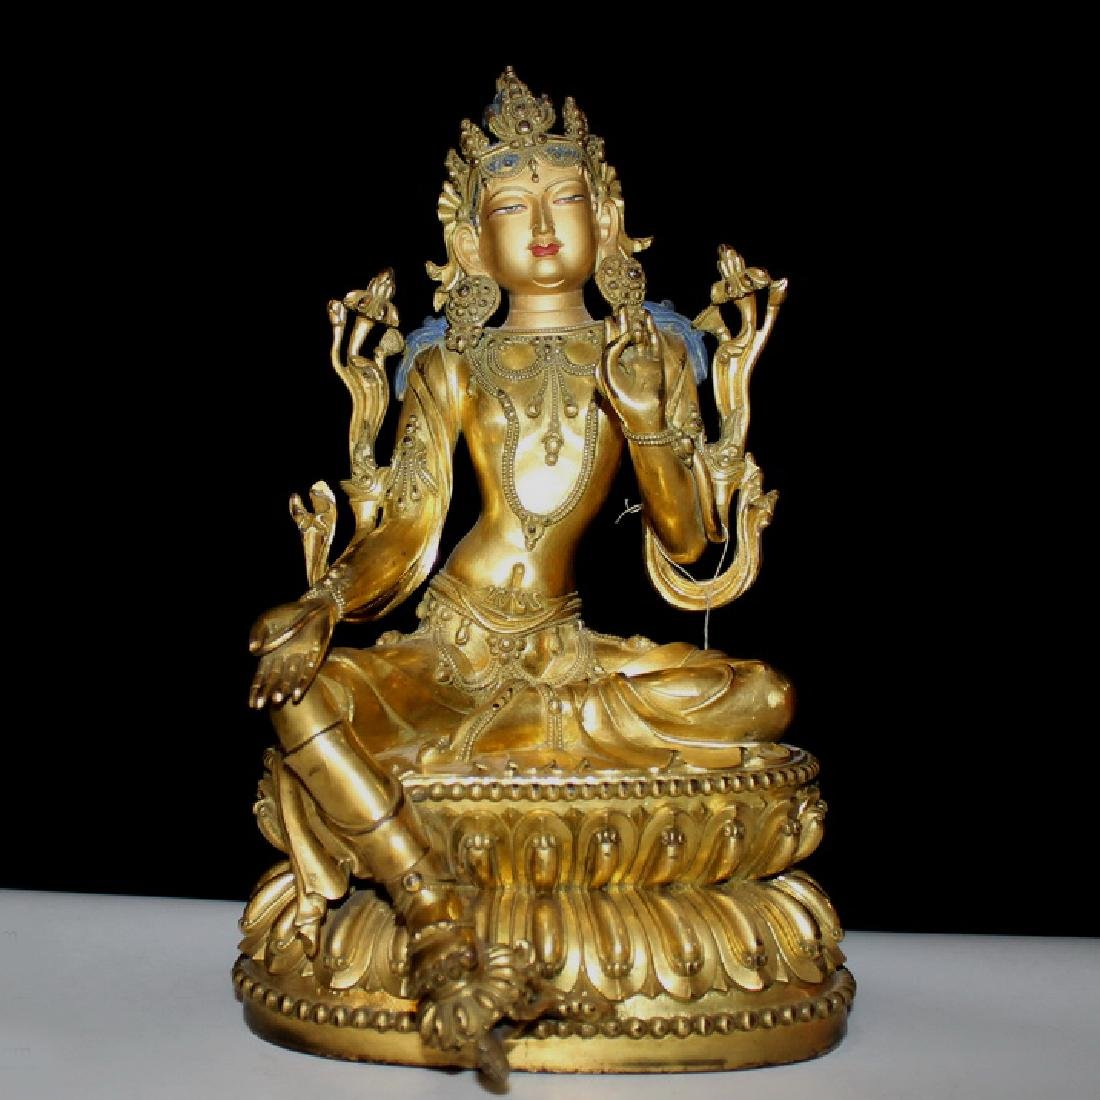 AN ANTIQUE TIBETAN GILT BRONZE BUDDHA STATUE